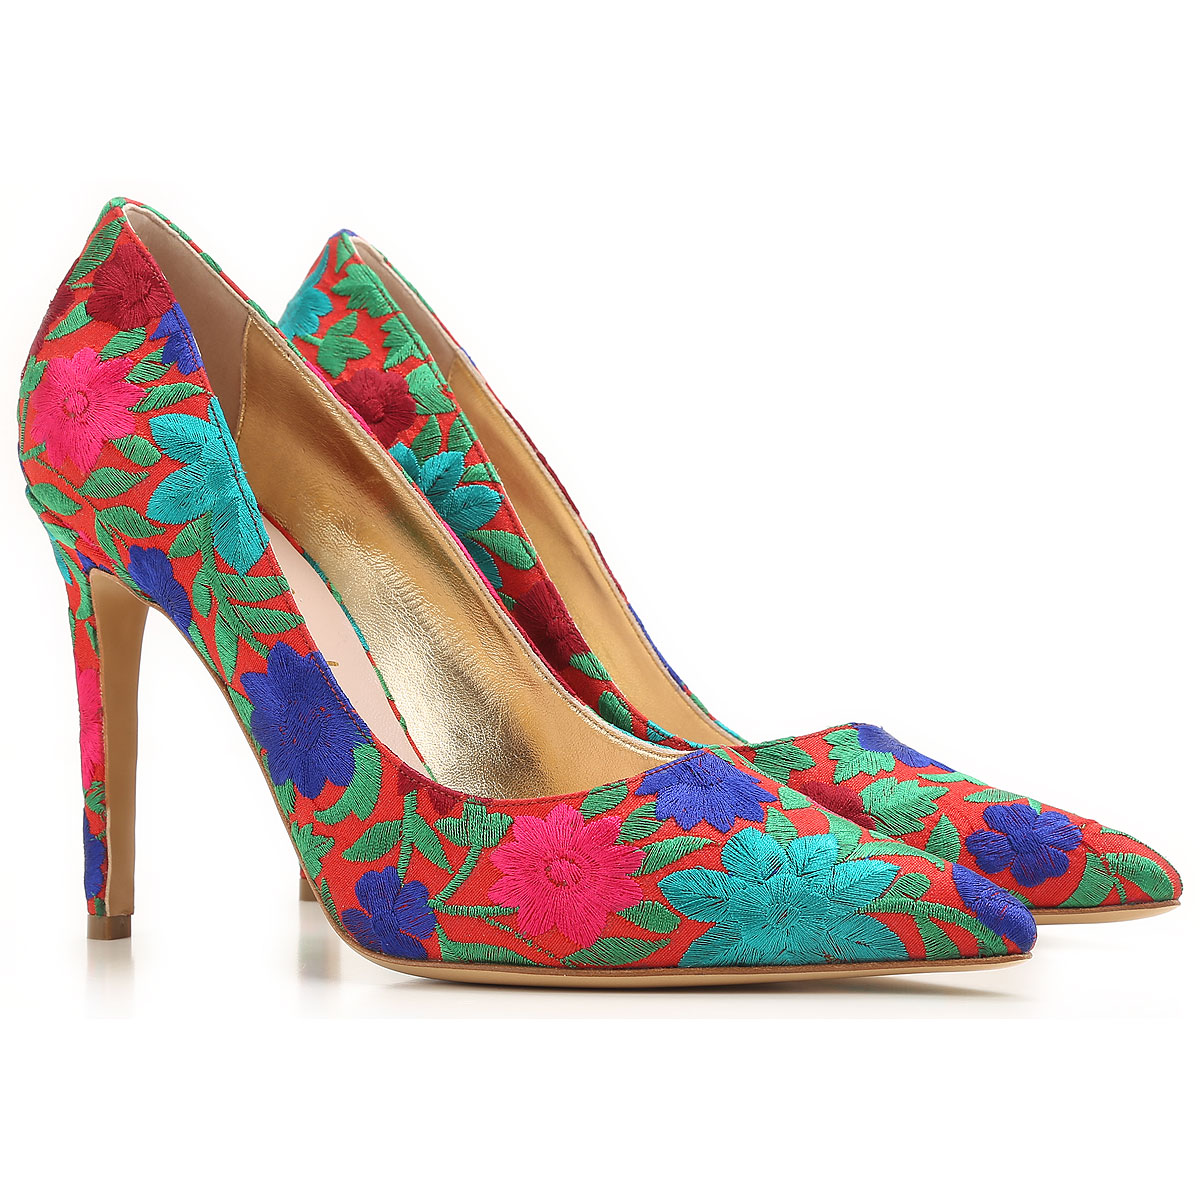 Vivienne Westwood Pumps & High Heels for Women in Outlet Pink USA - GOOFASH